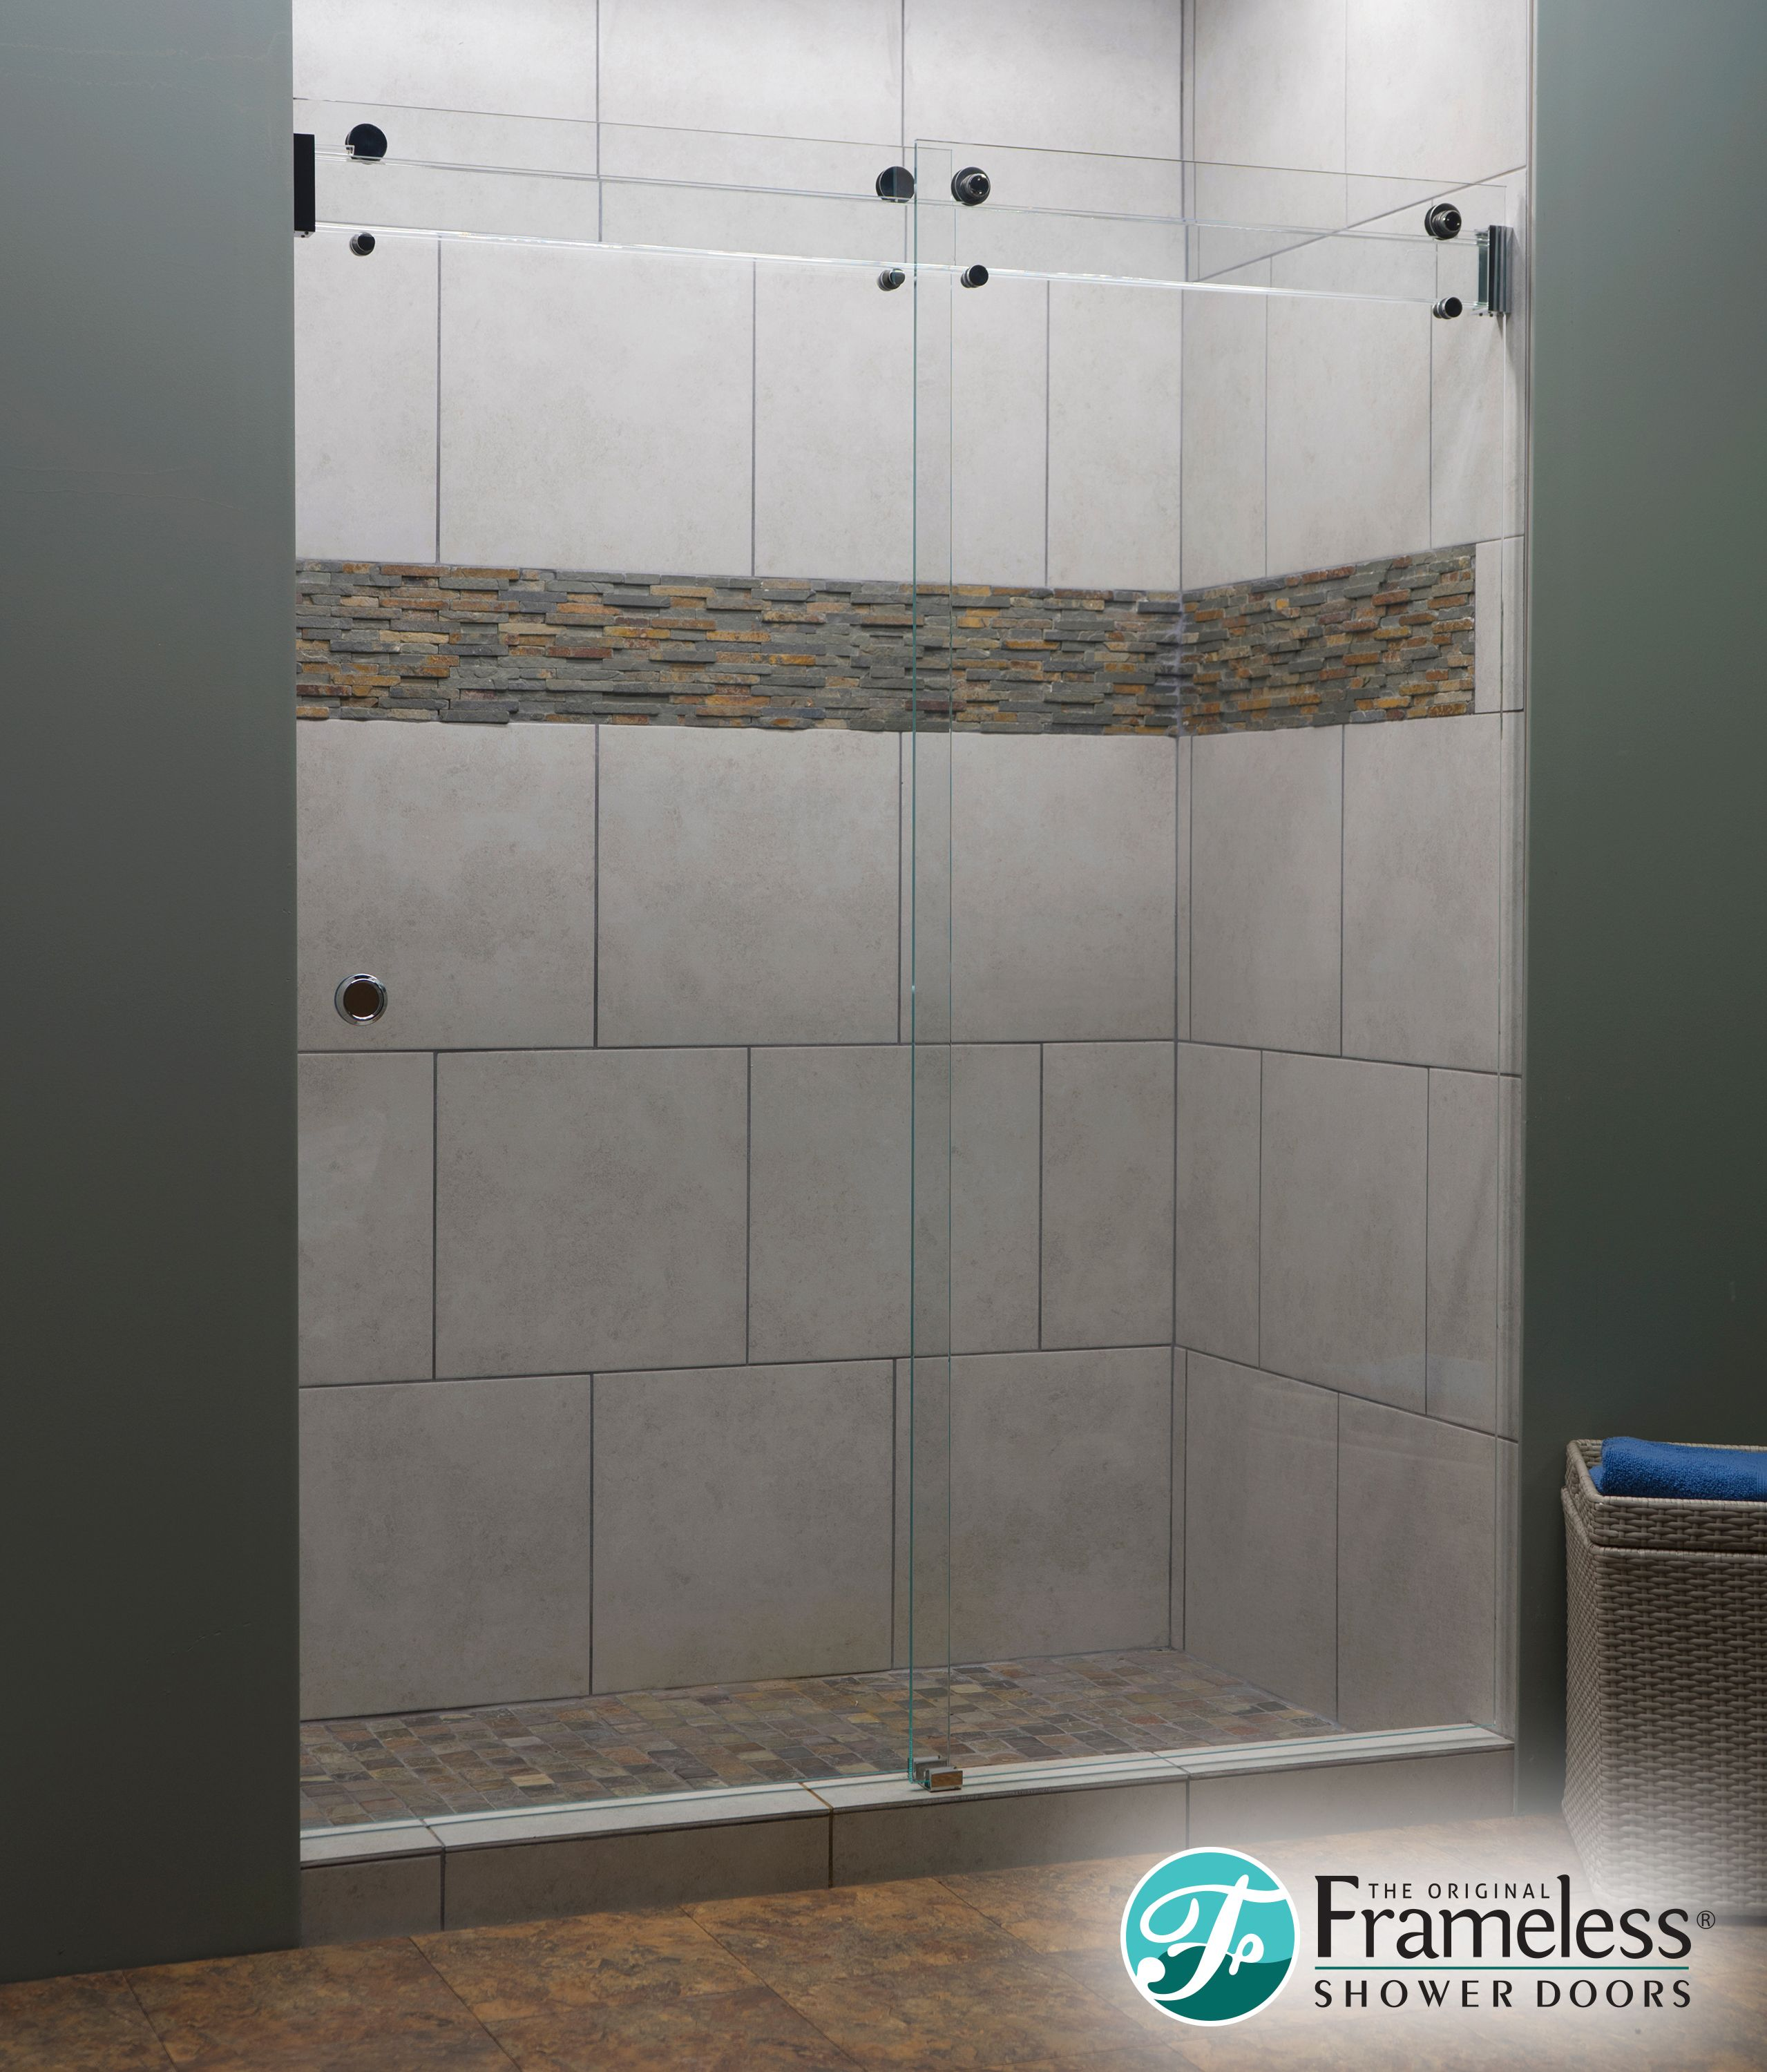 The Original Frameless Shower Doors Introduces The New Clearslide